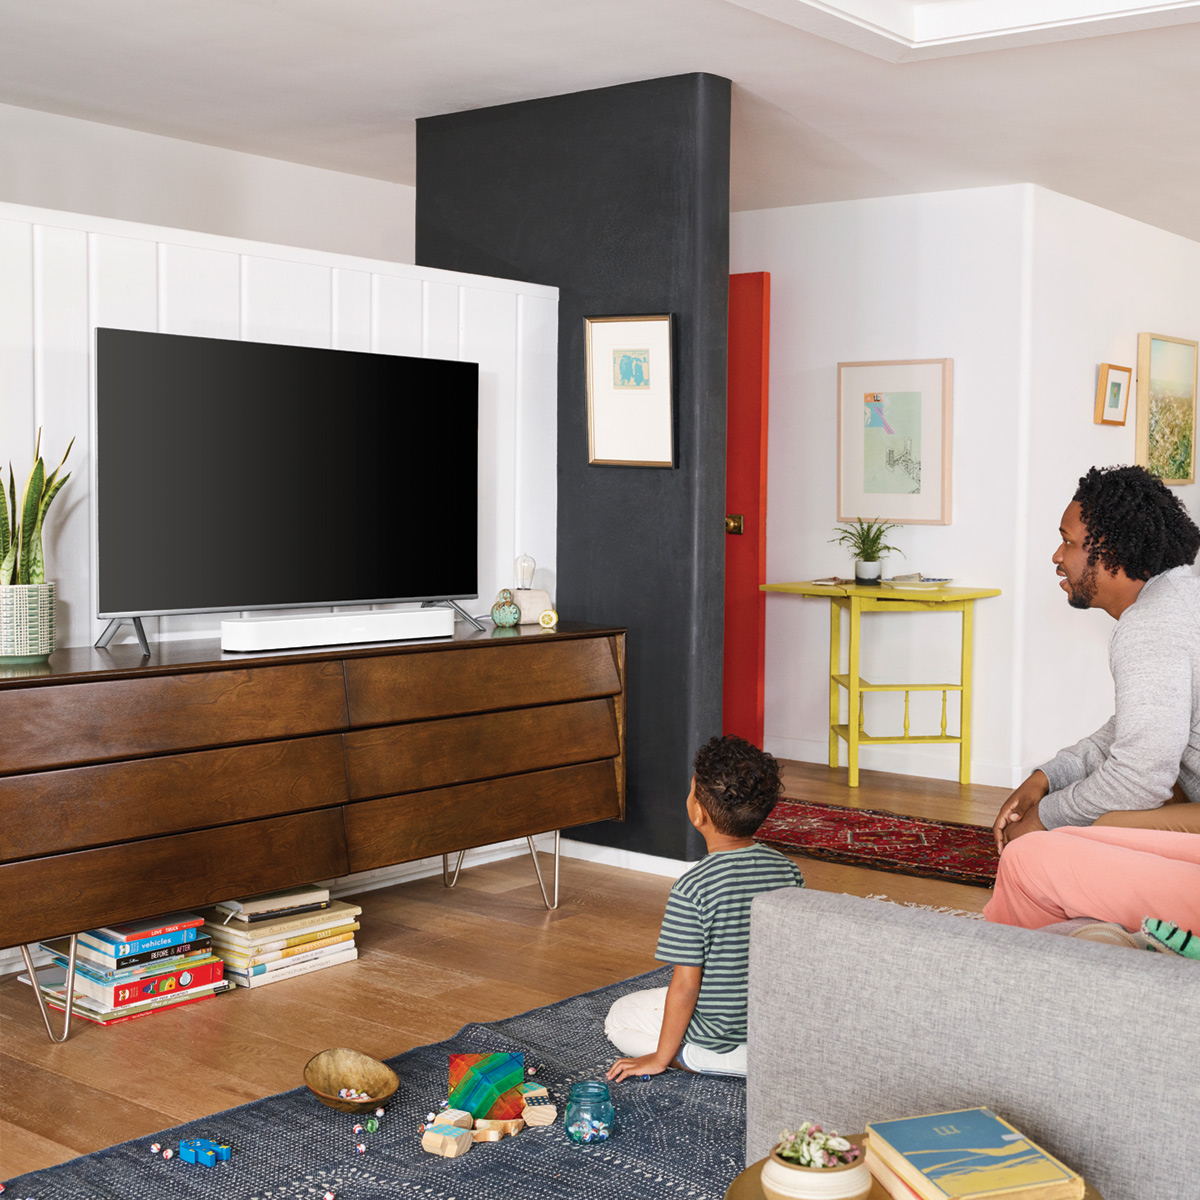 Sonos-Beam-Compact-Smart-Sound-Bar-with-Voice-Control thumbnail 33